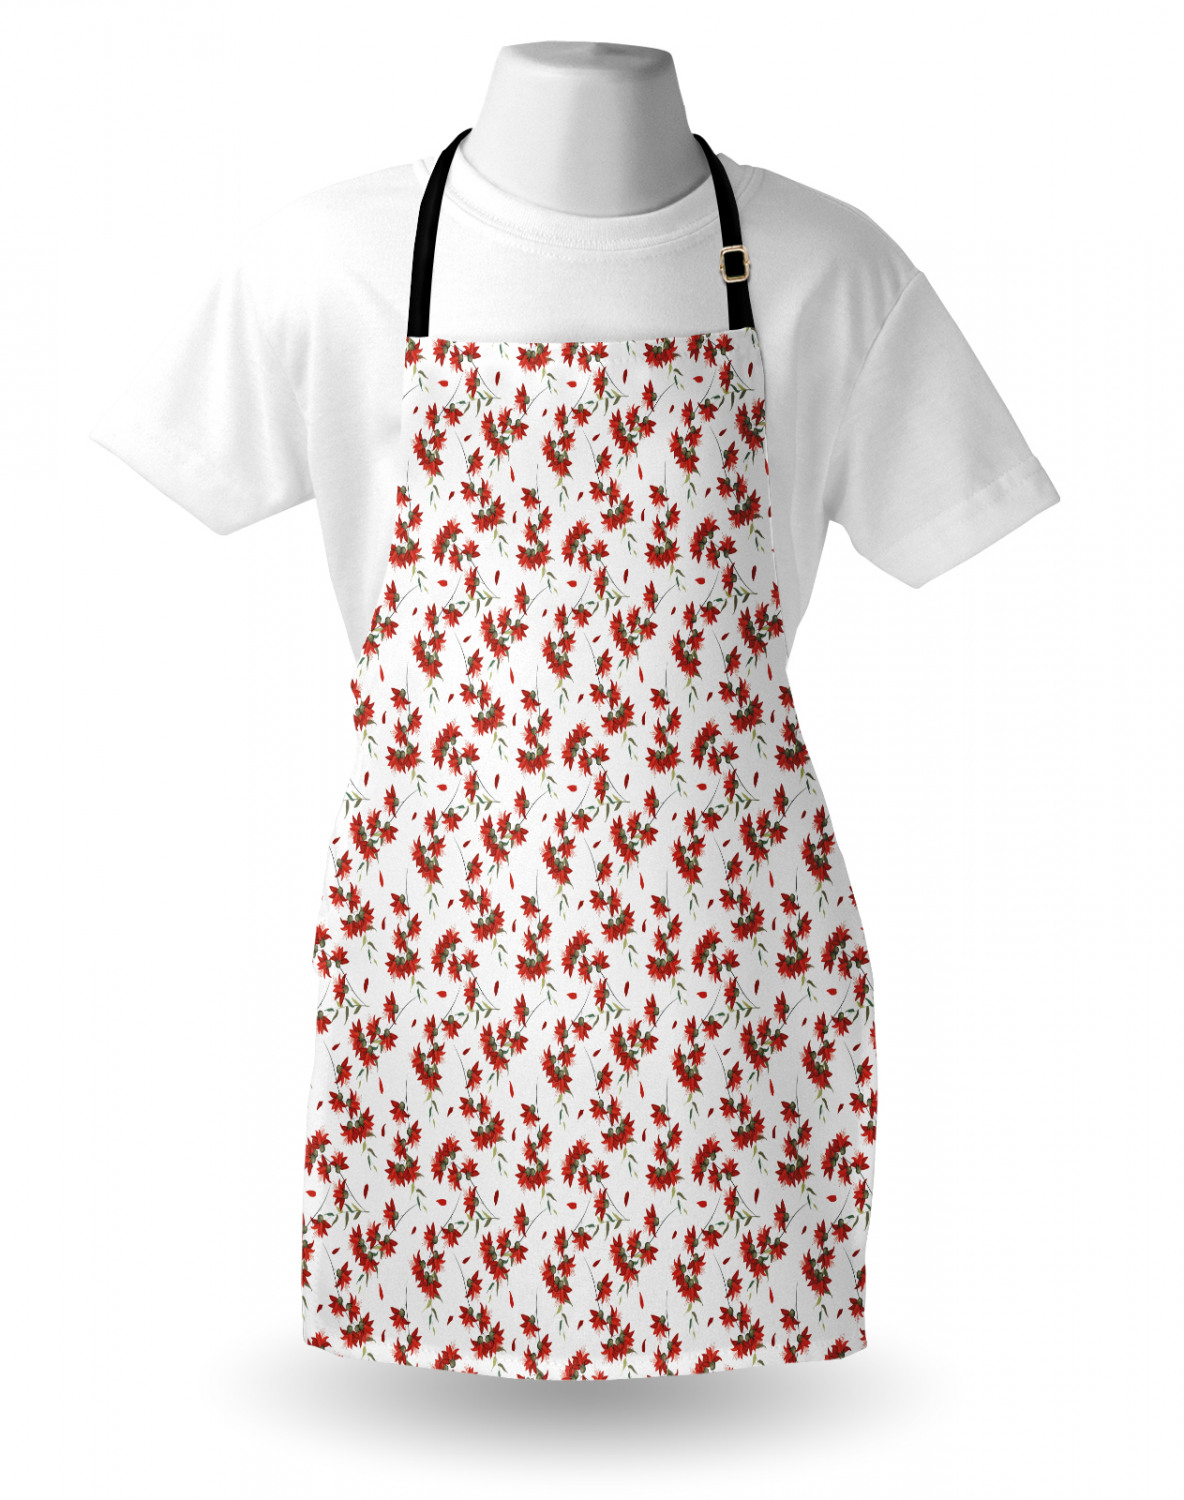 Ambesonne-Outdoor-Use-Apron-with-Adjustable-Neck-Strap-for-Gardening-and-Cooking miniatura 135